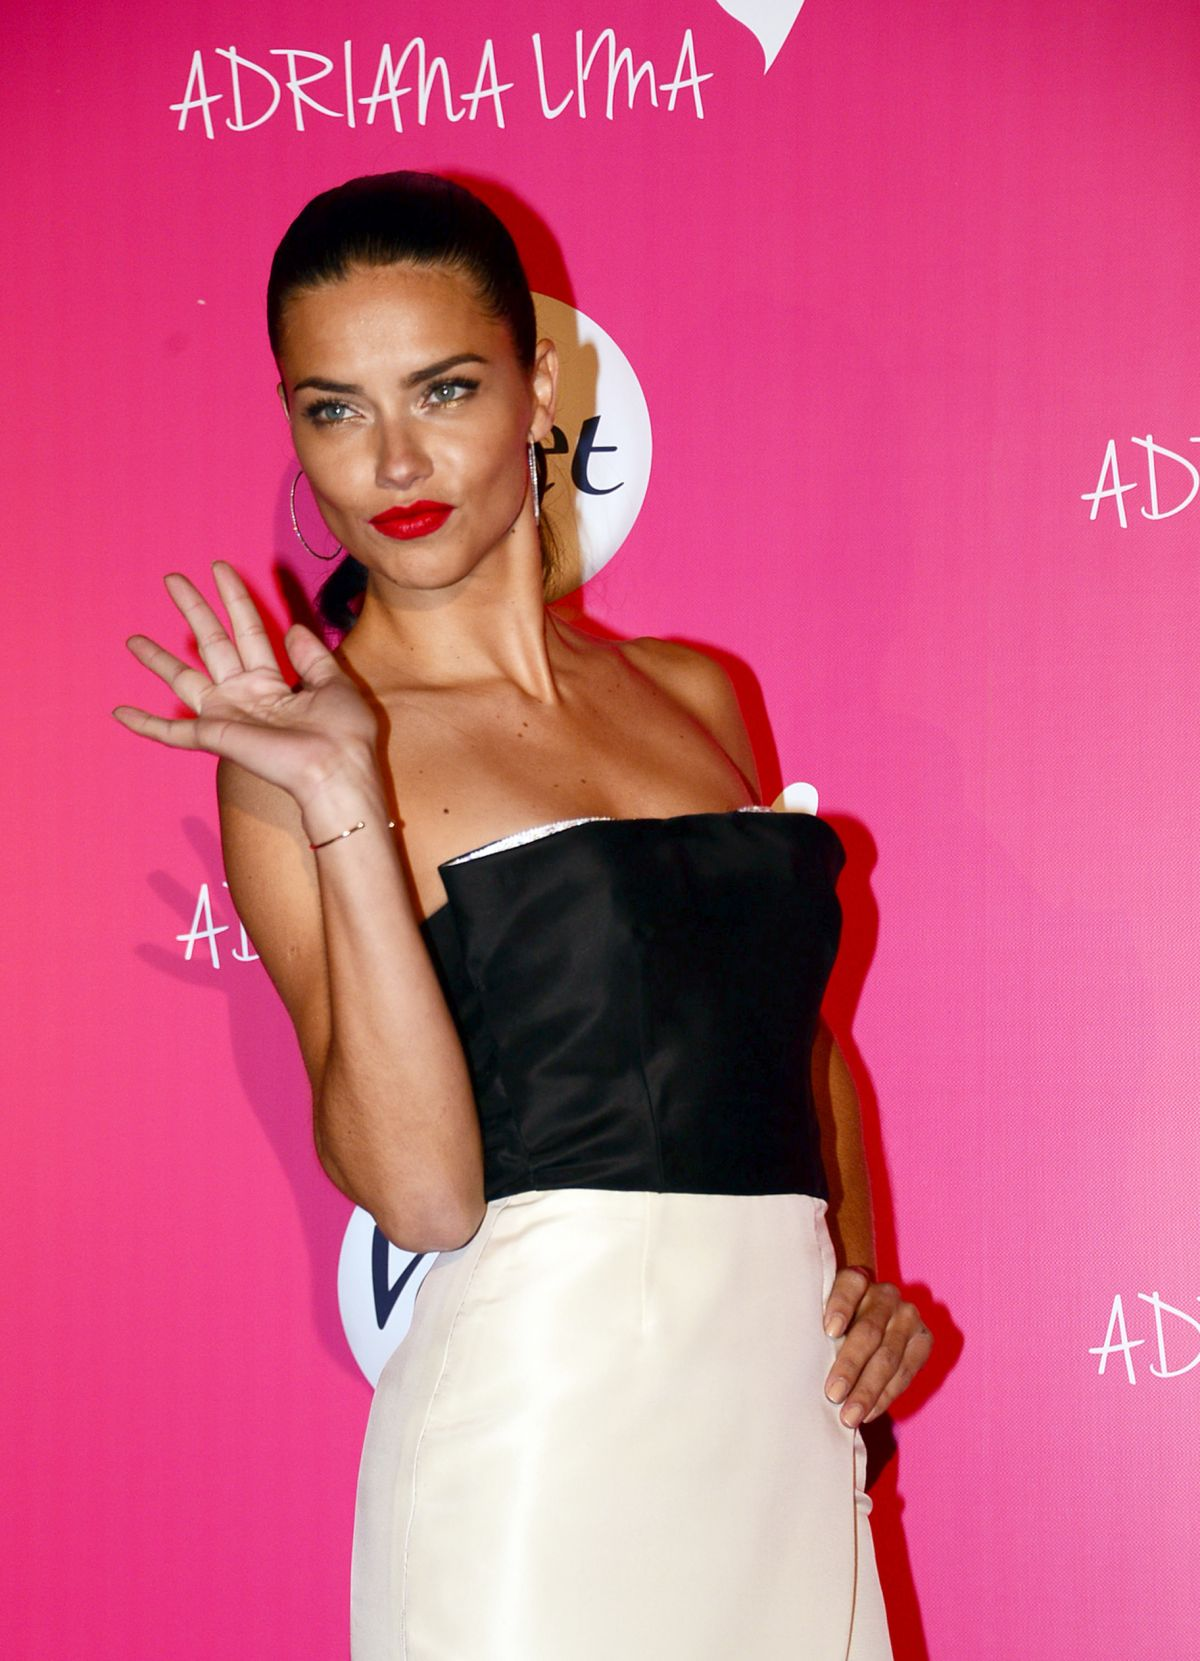 ADRIANA LIMA Promotes Veet Naturals in Istanbul